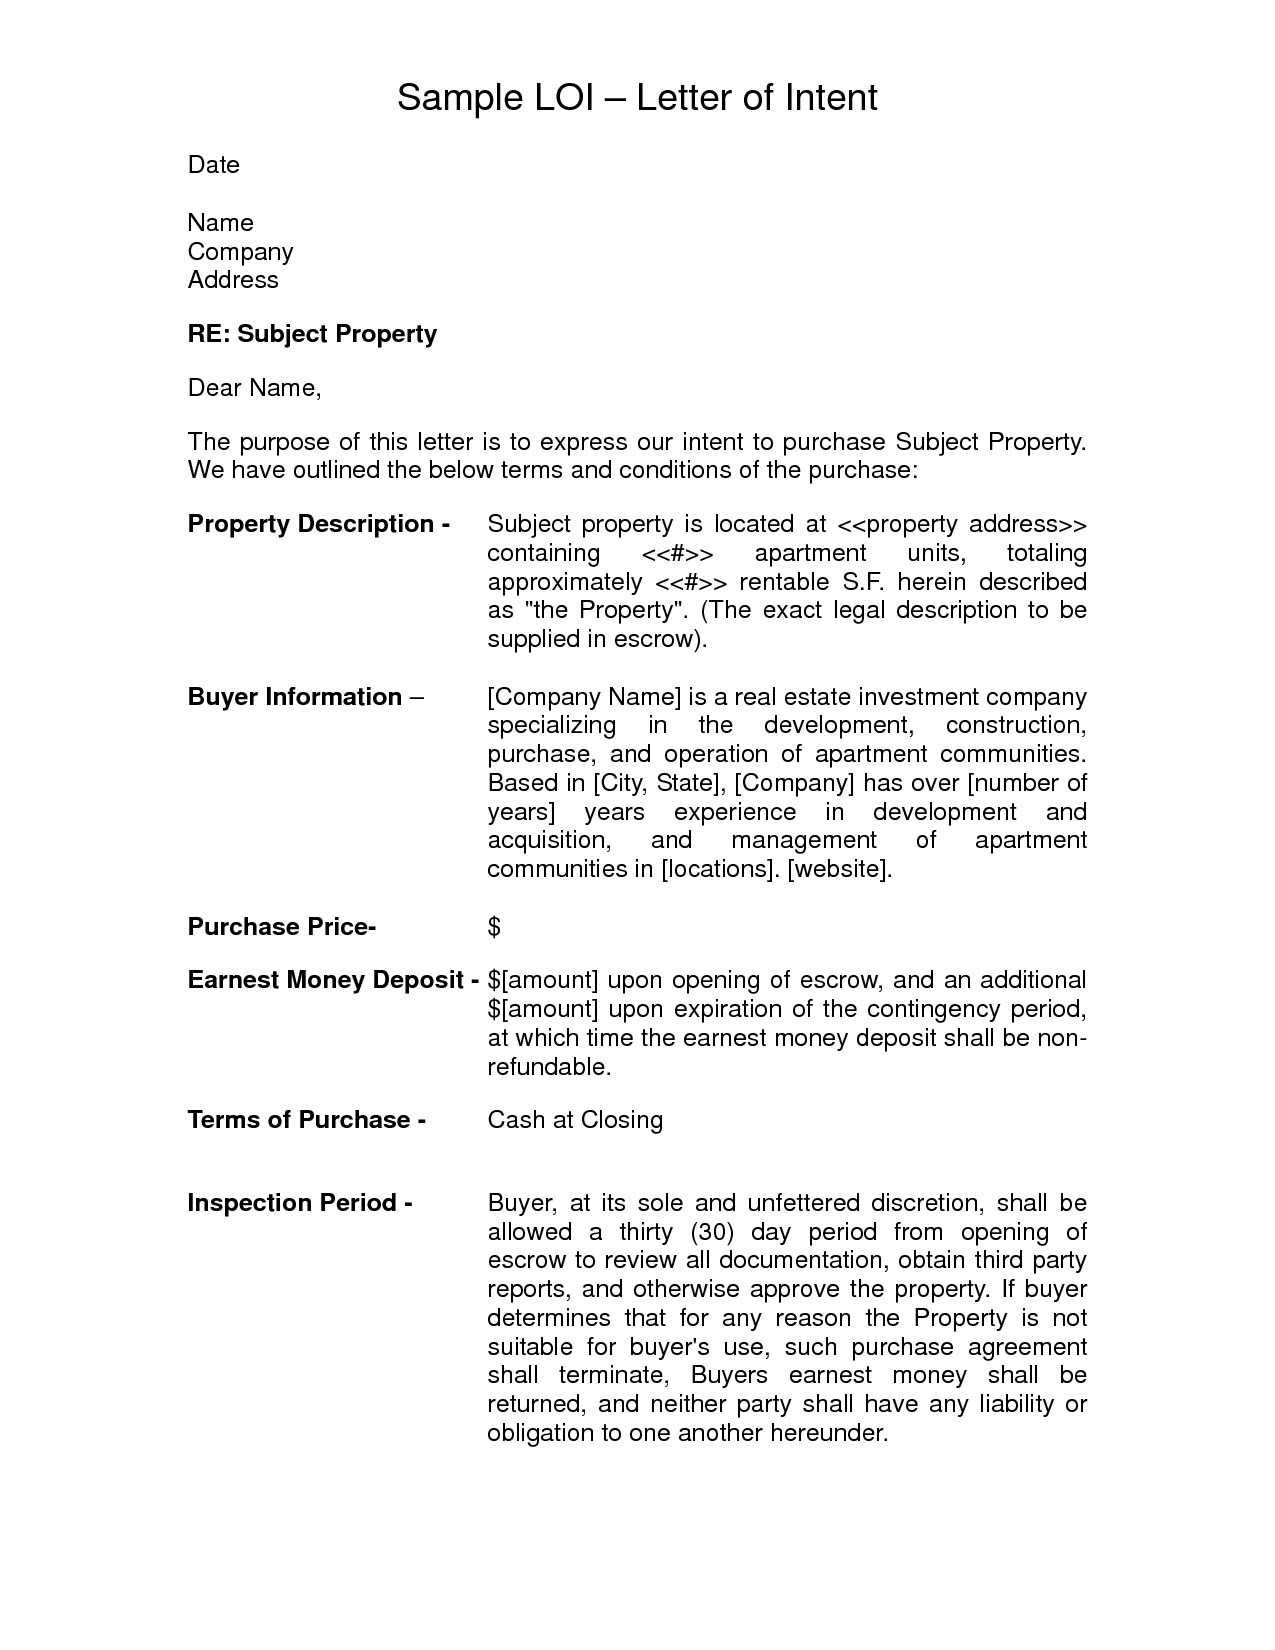 Letter Of Intent to Purchase Template - Letter Intent to Purchase Property Best S Template Proposal